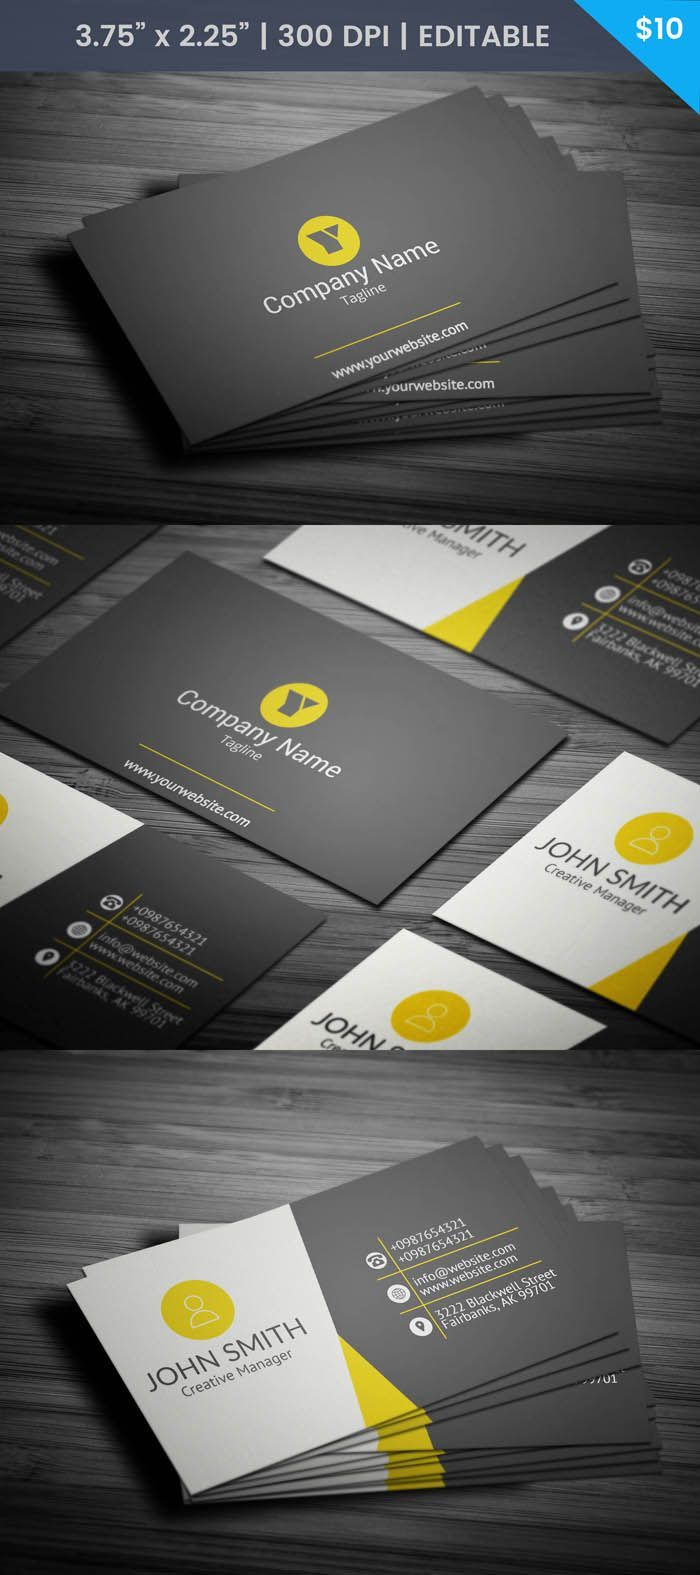 Free Travel Agent Business Card Template Businesscardsonline Modern Business Cards Printing Business Cards Business Cards Online